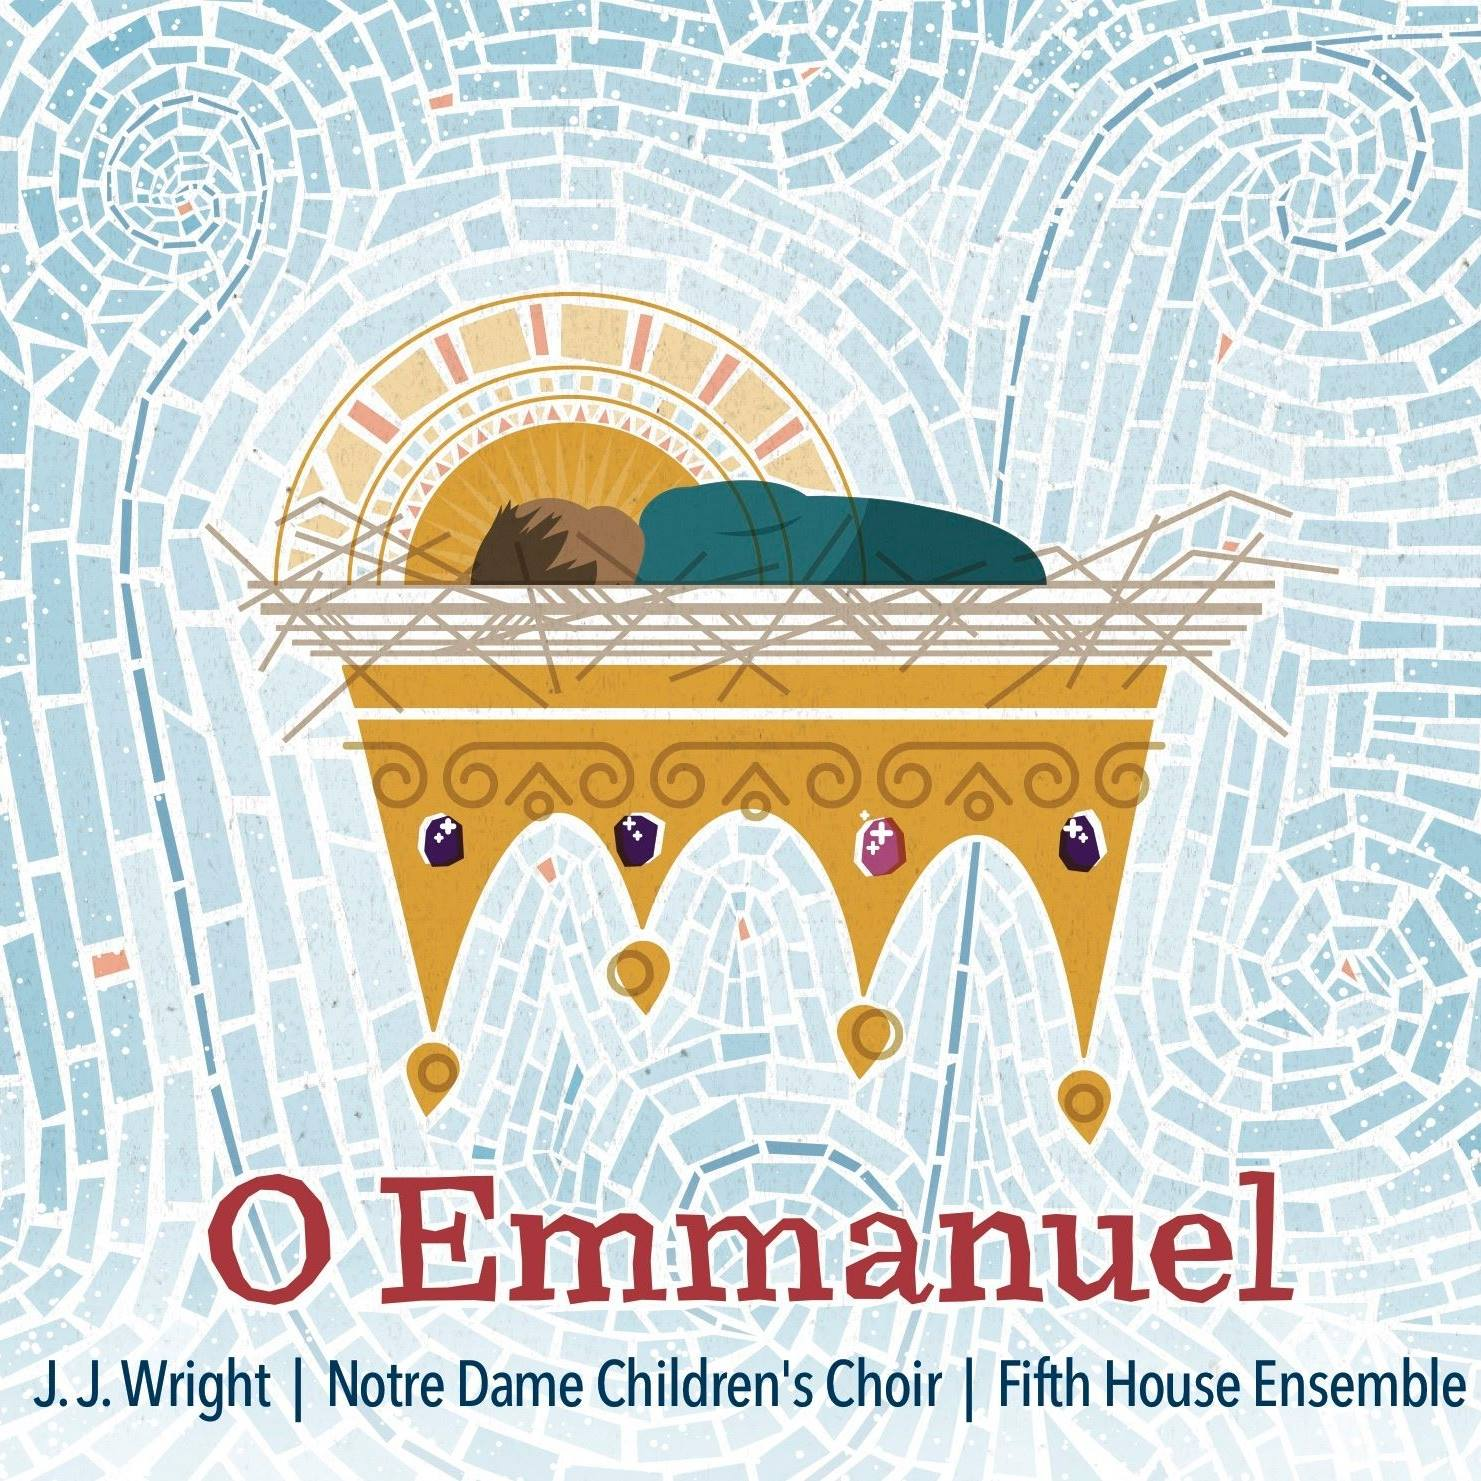 oemmanuelcover-1